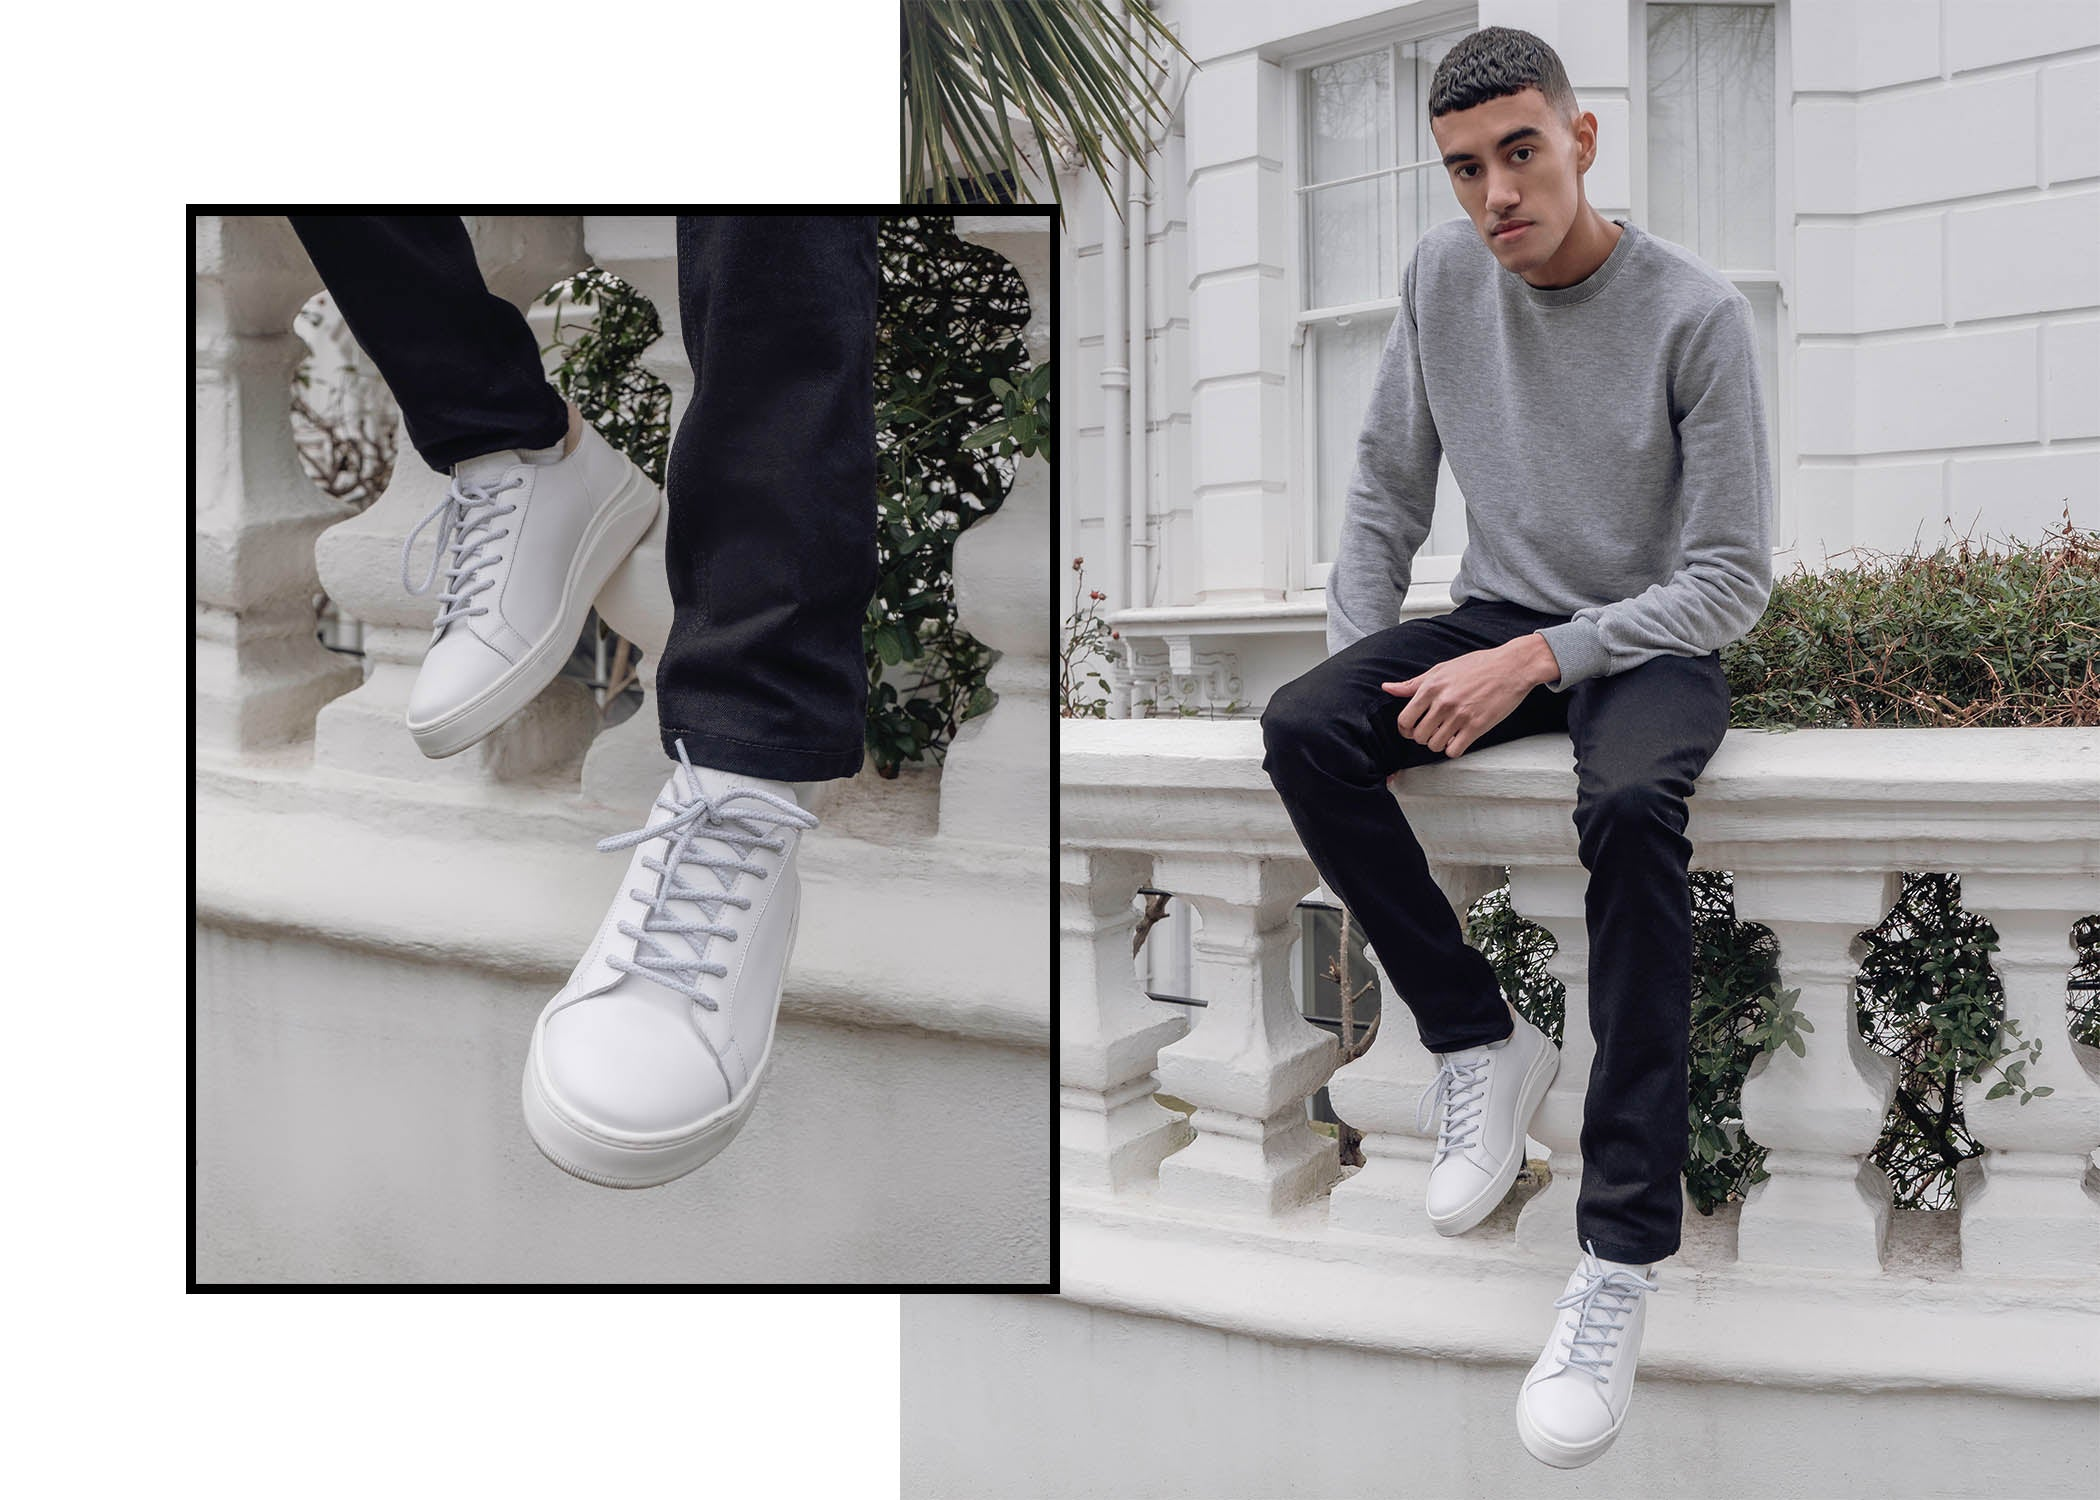 Walk London Kilburn Sneaker - white sneaker